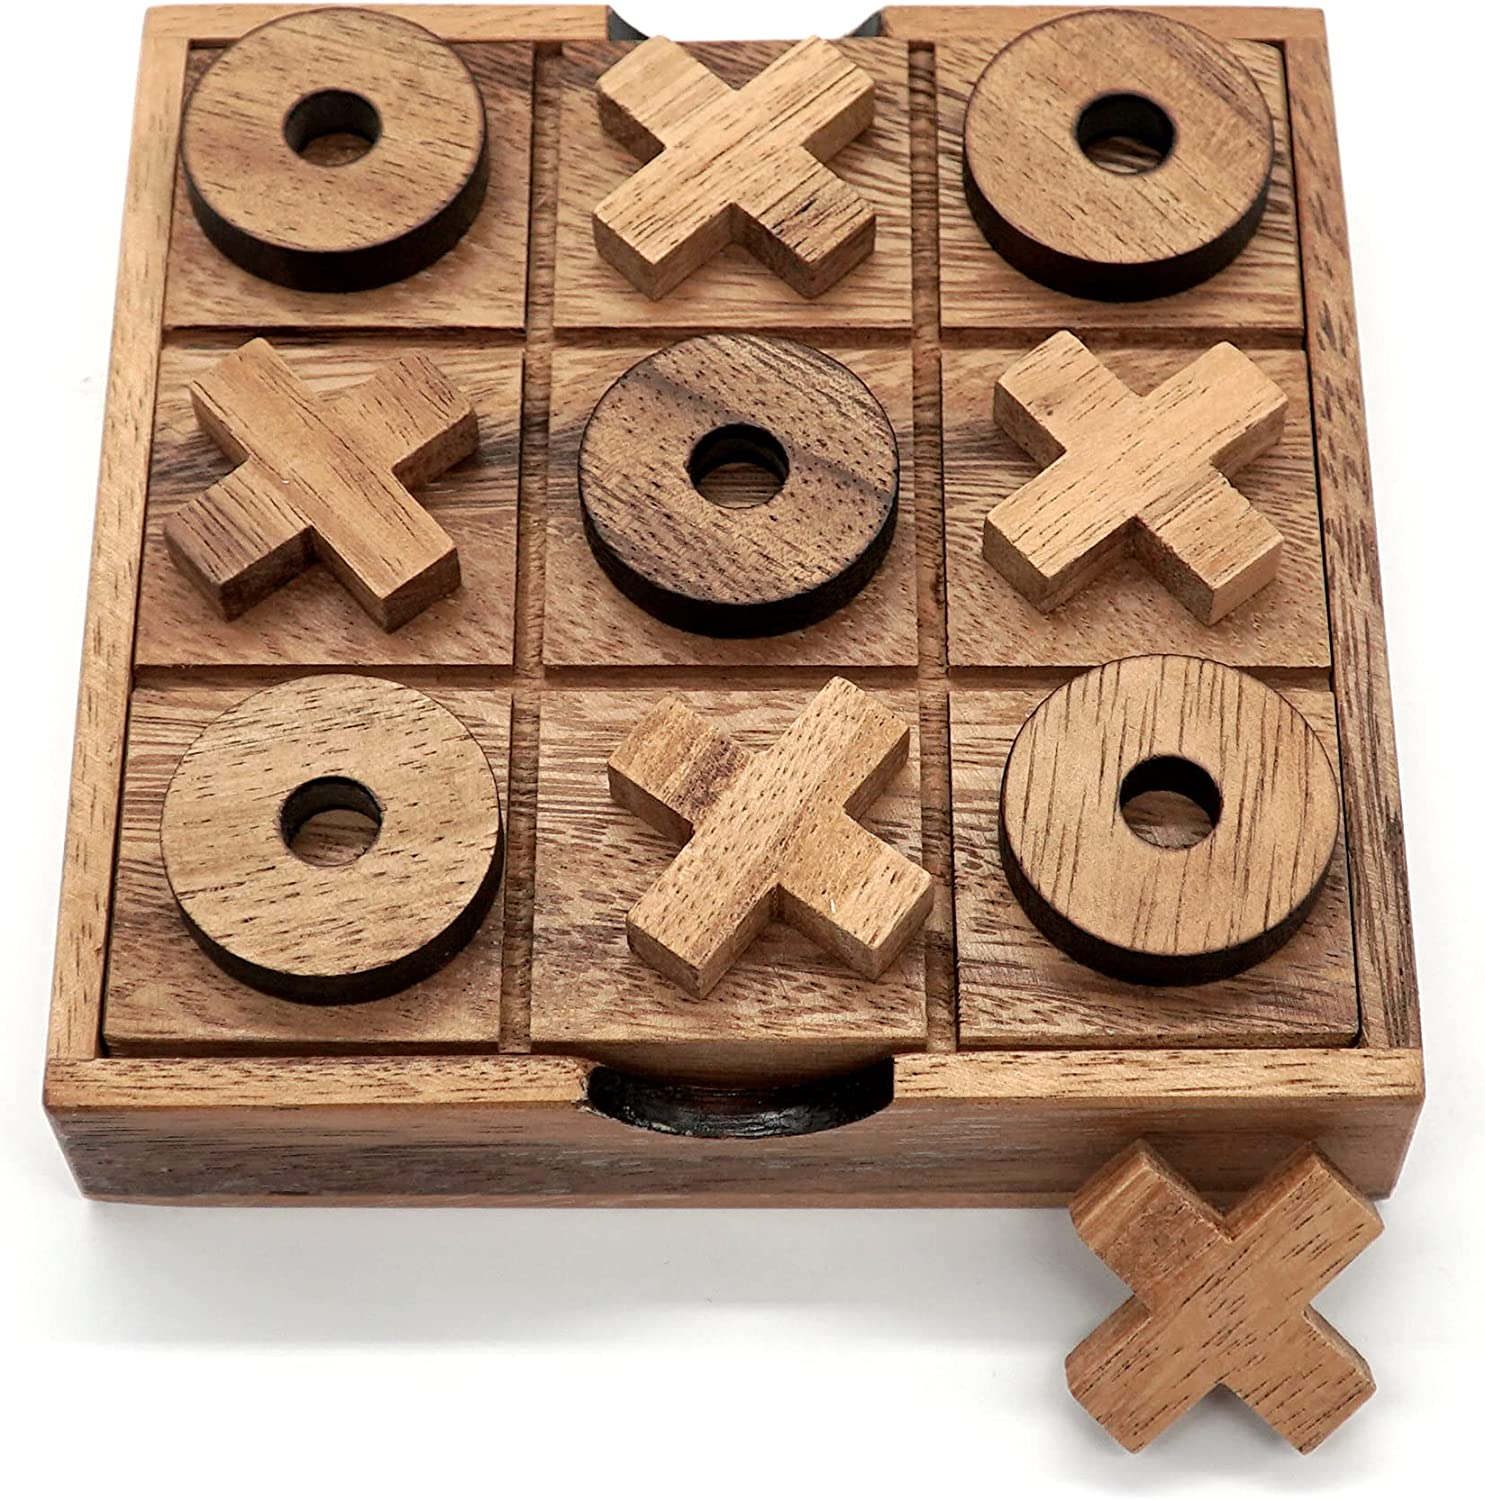 Buy Tic Tac Toe Wooden Board Game Table Toy Player Room Decor Tables Family Xoxo Decorative Pieces Adult Rustic Kids Play Travel Backyard Discovery Night Level Drinking Romantic Decorations Standard Online In